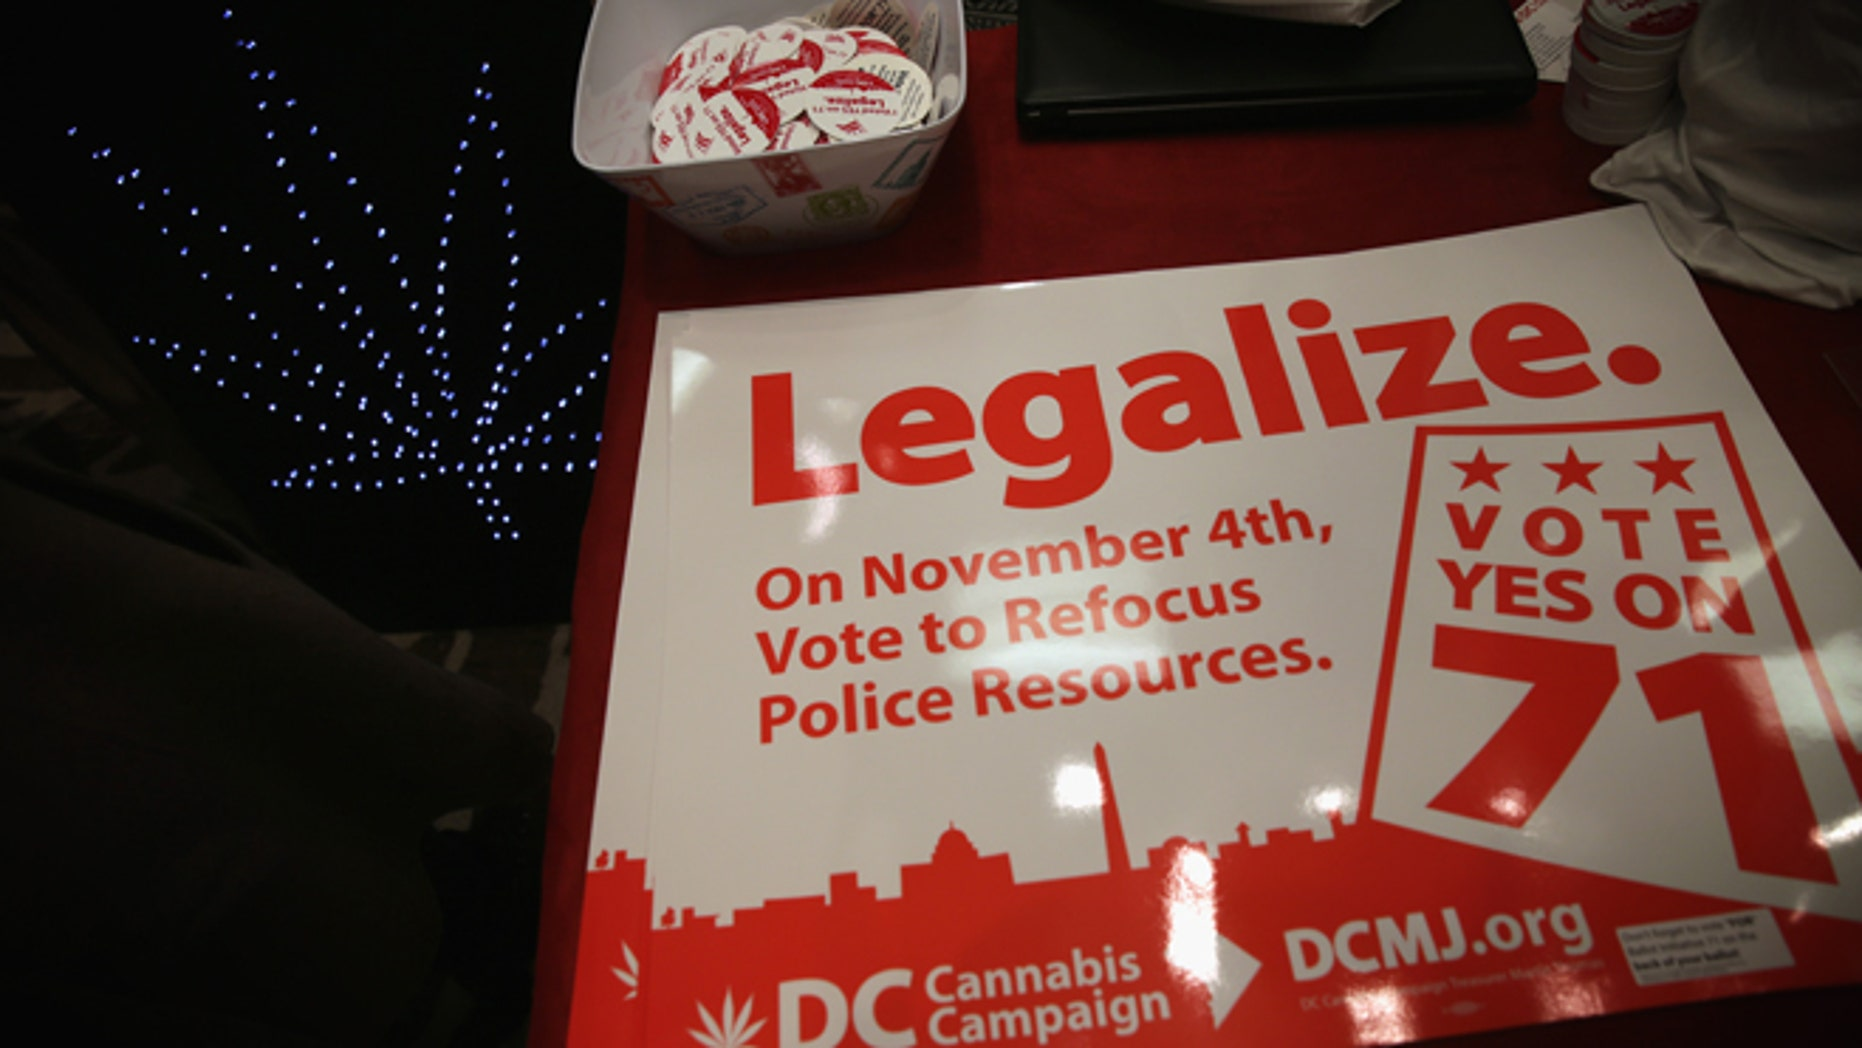 WASHINGTON, DC - FEBRUARY 28:  Posters and stickers regarding Washington, DC's marijuana legalization are seen during a ComfyTree Cannabis Academy conference February 28, 2015 in Washington, DC. Attendees participated in the conference to gain knowledge on how to legally enter and operate in the cannabis industry.  (Photo by Alex Wong/Getty Images)